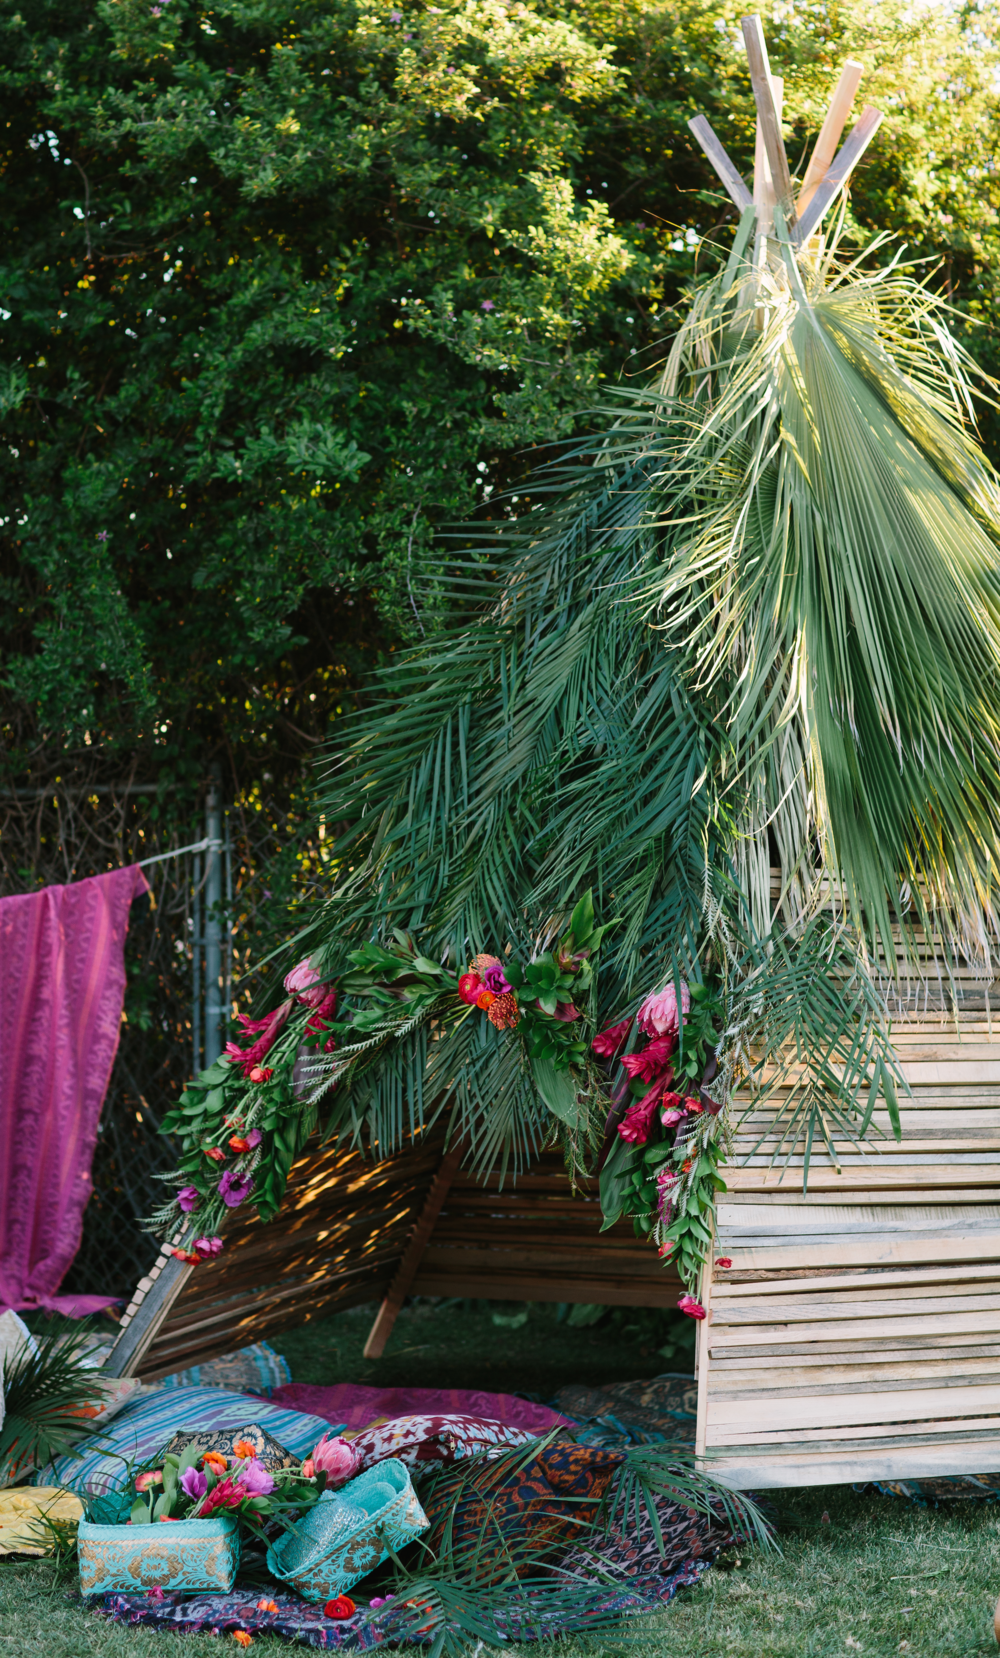 Custom Backyard Teepee | Cleobella Photoshoot. Photo | Taryn Kent